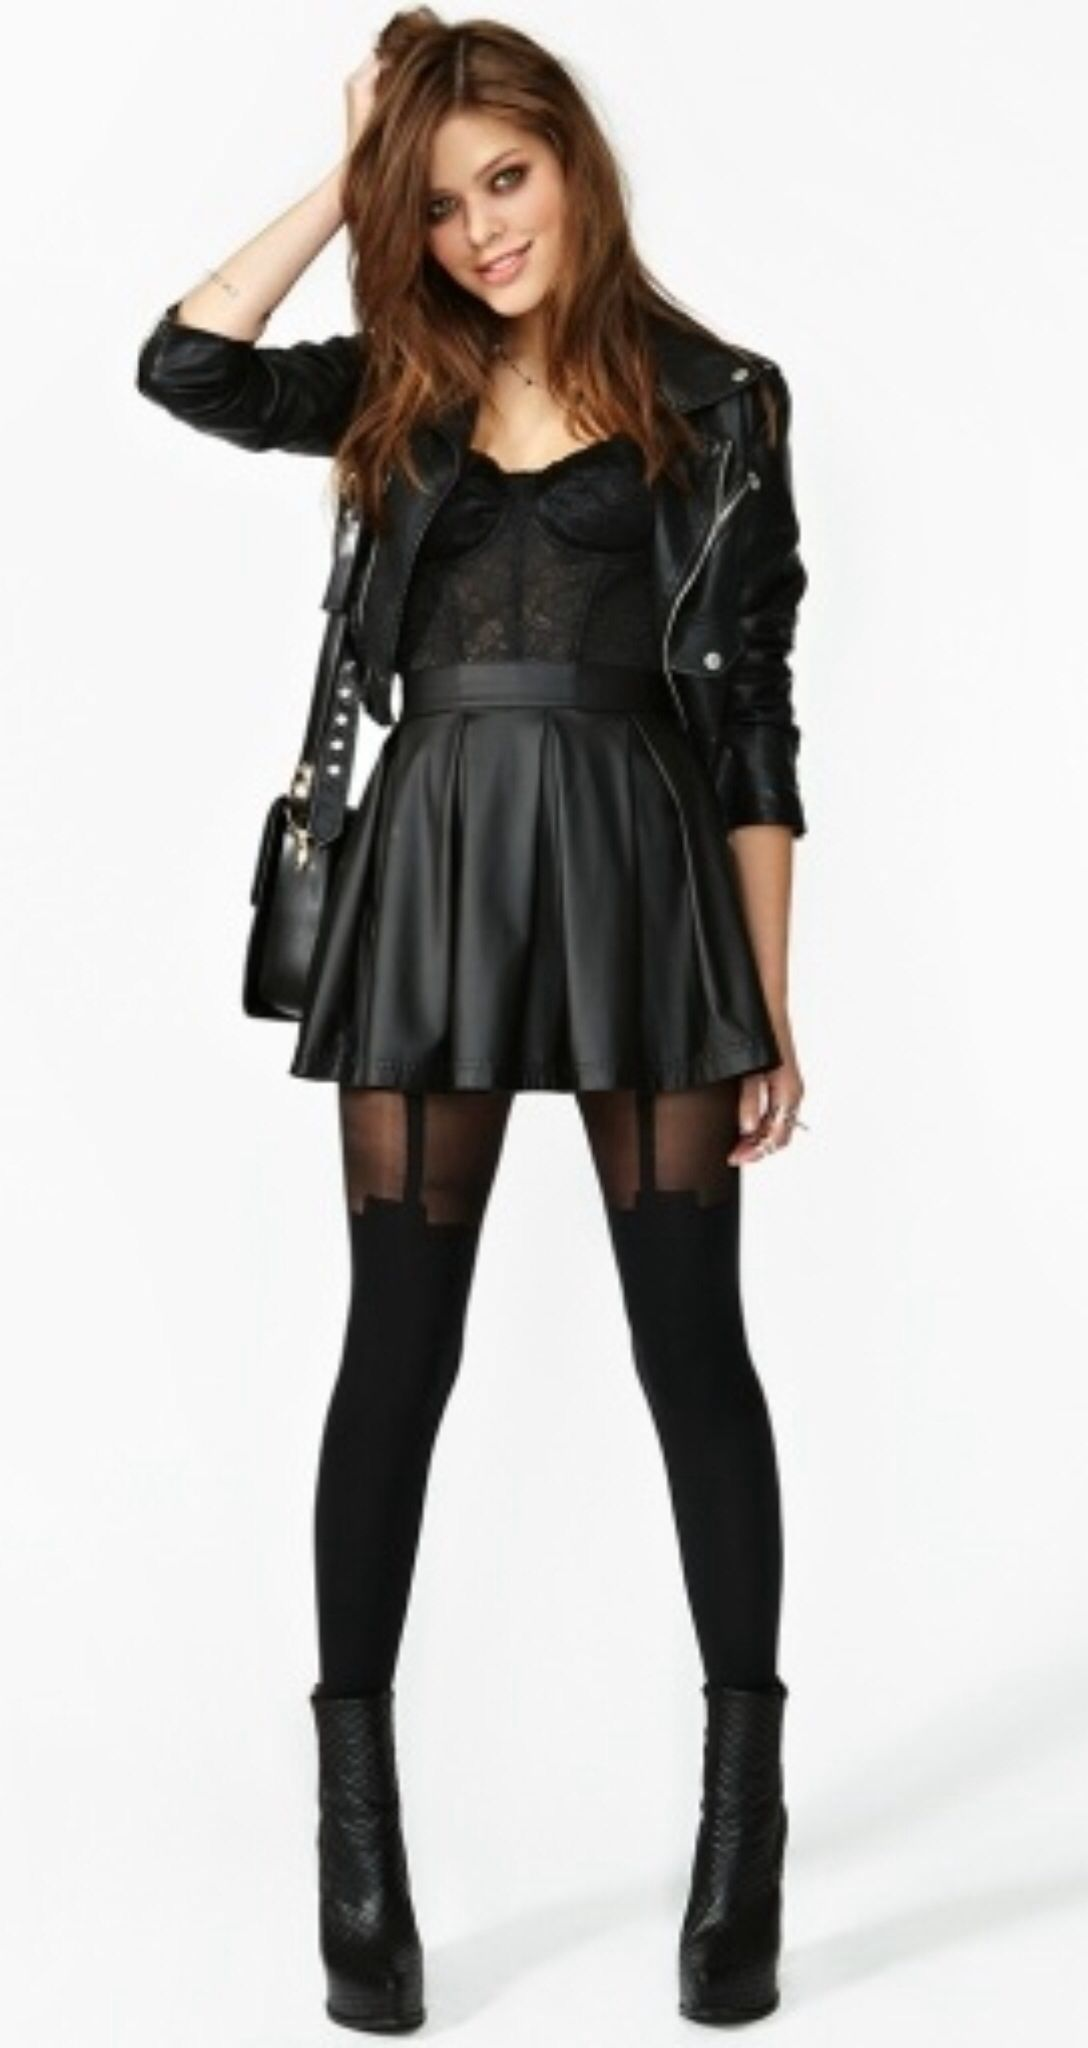 Lace dress styles for funeral  How to get a rocker chic look for a bitchus funeral